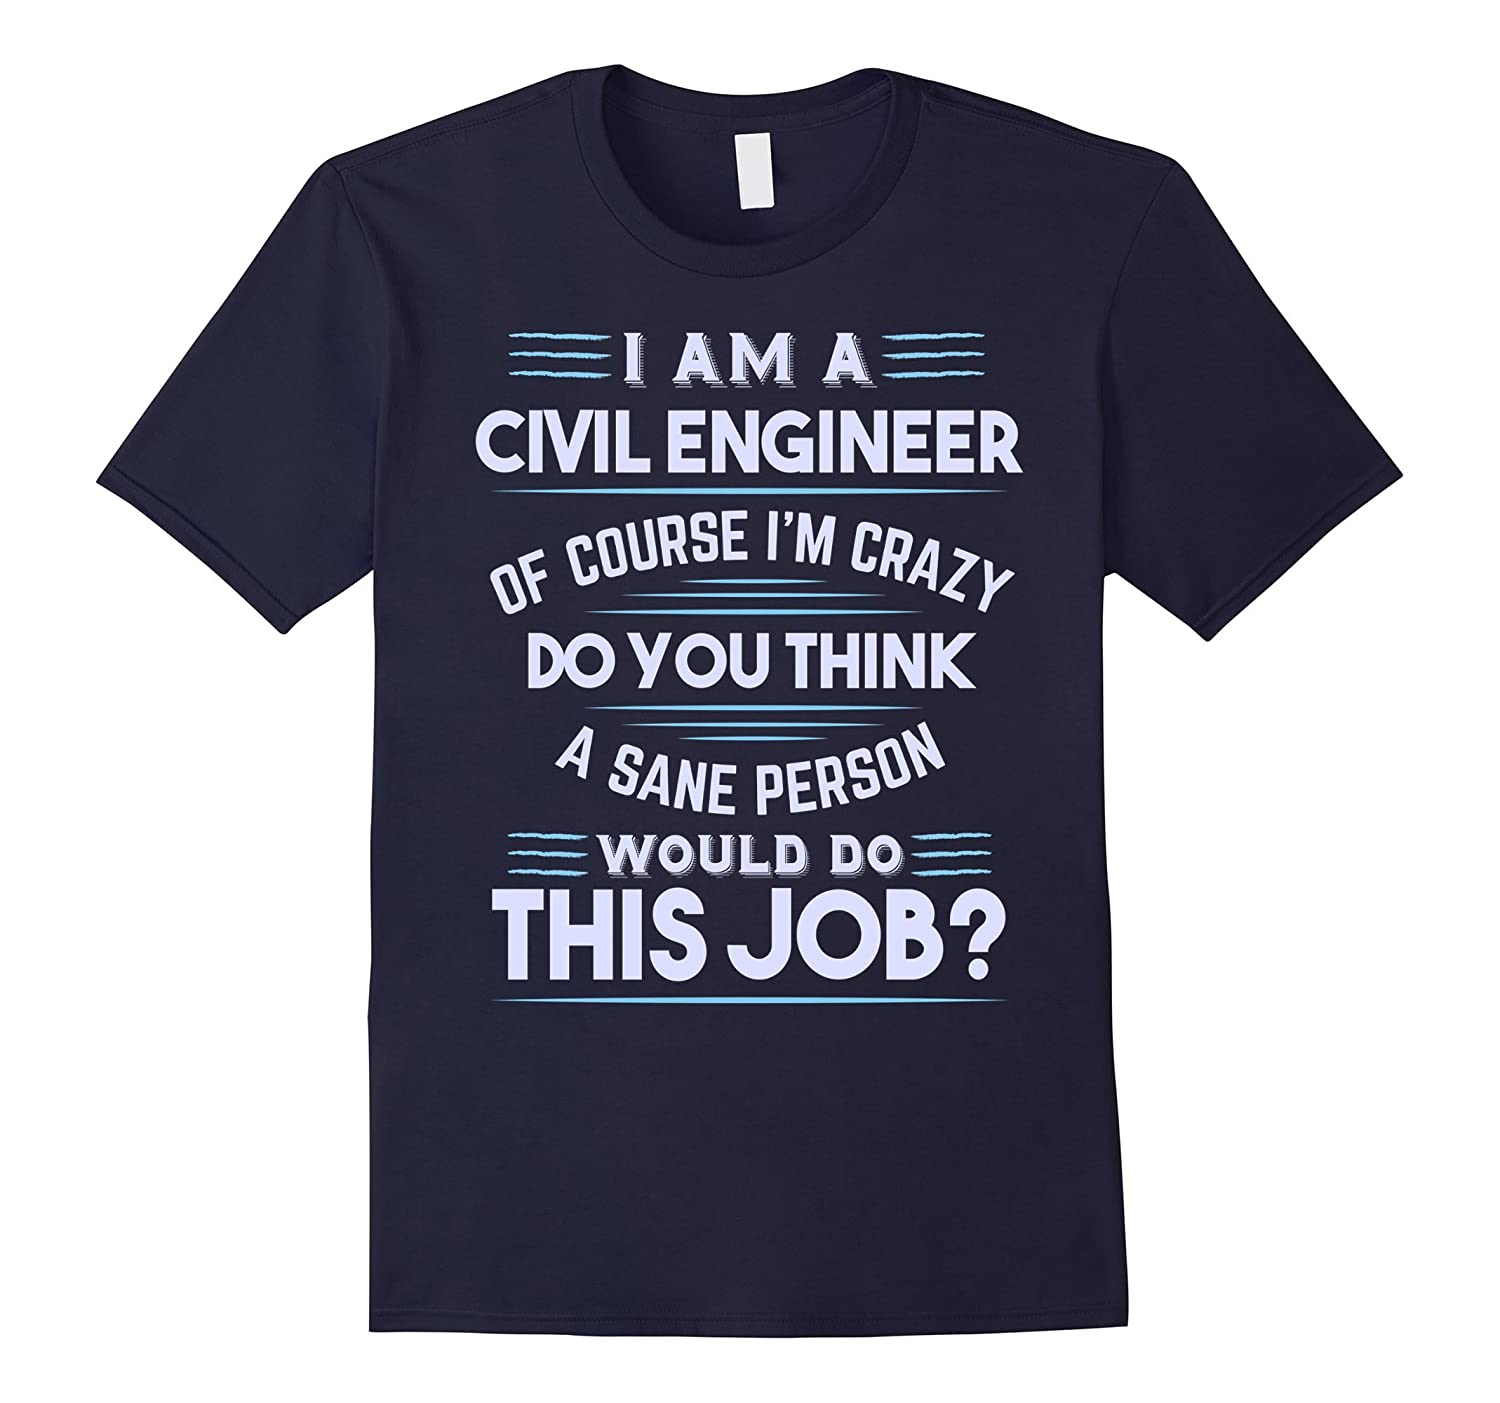 Im a Civil Engineer of course Im crazy T-Shirt-Vaci